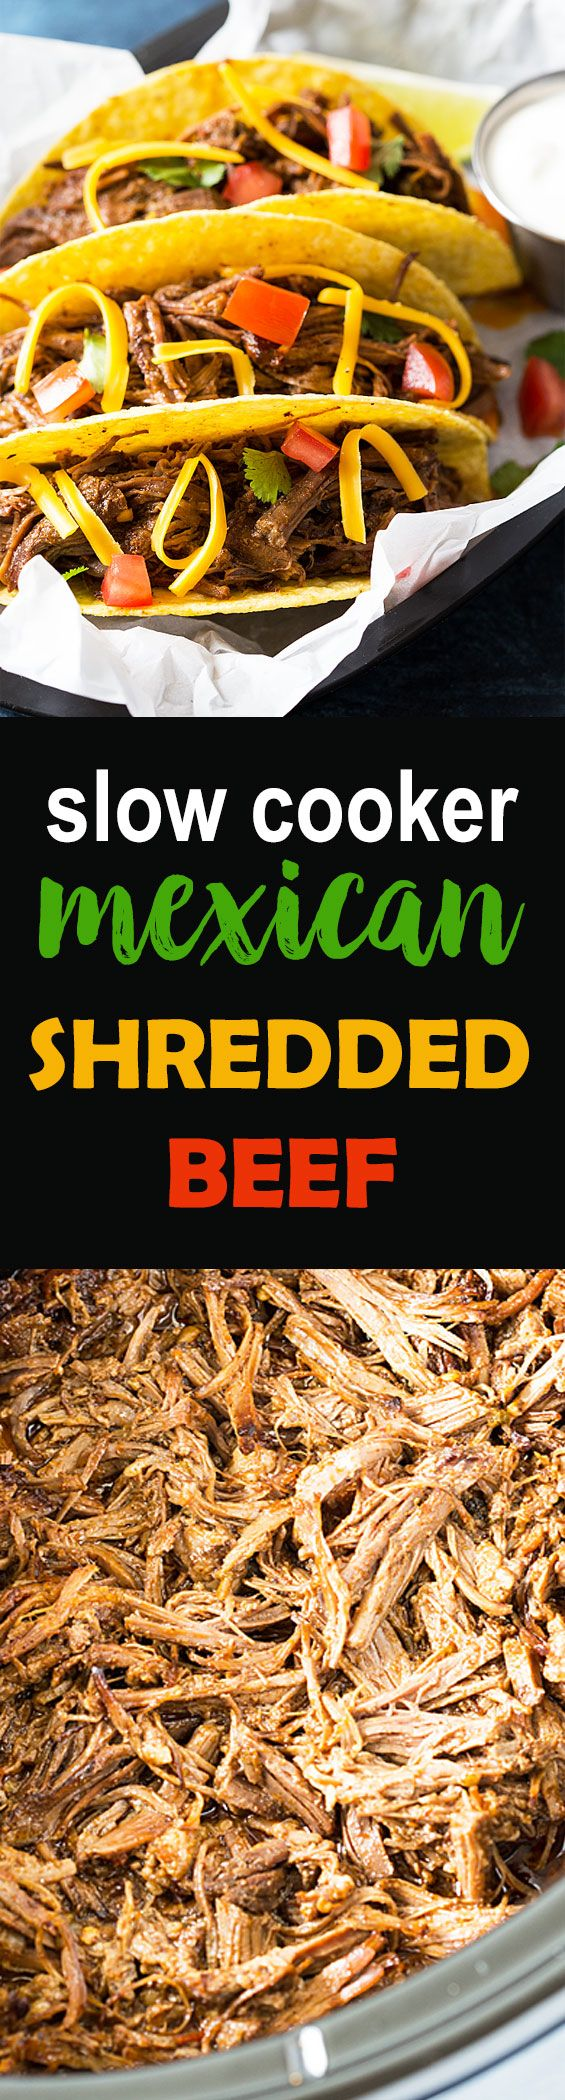 Slow Cooker Mexican Shredded Beef - The most tender, moist and flavorful pulled Mexican beef!